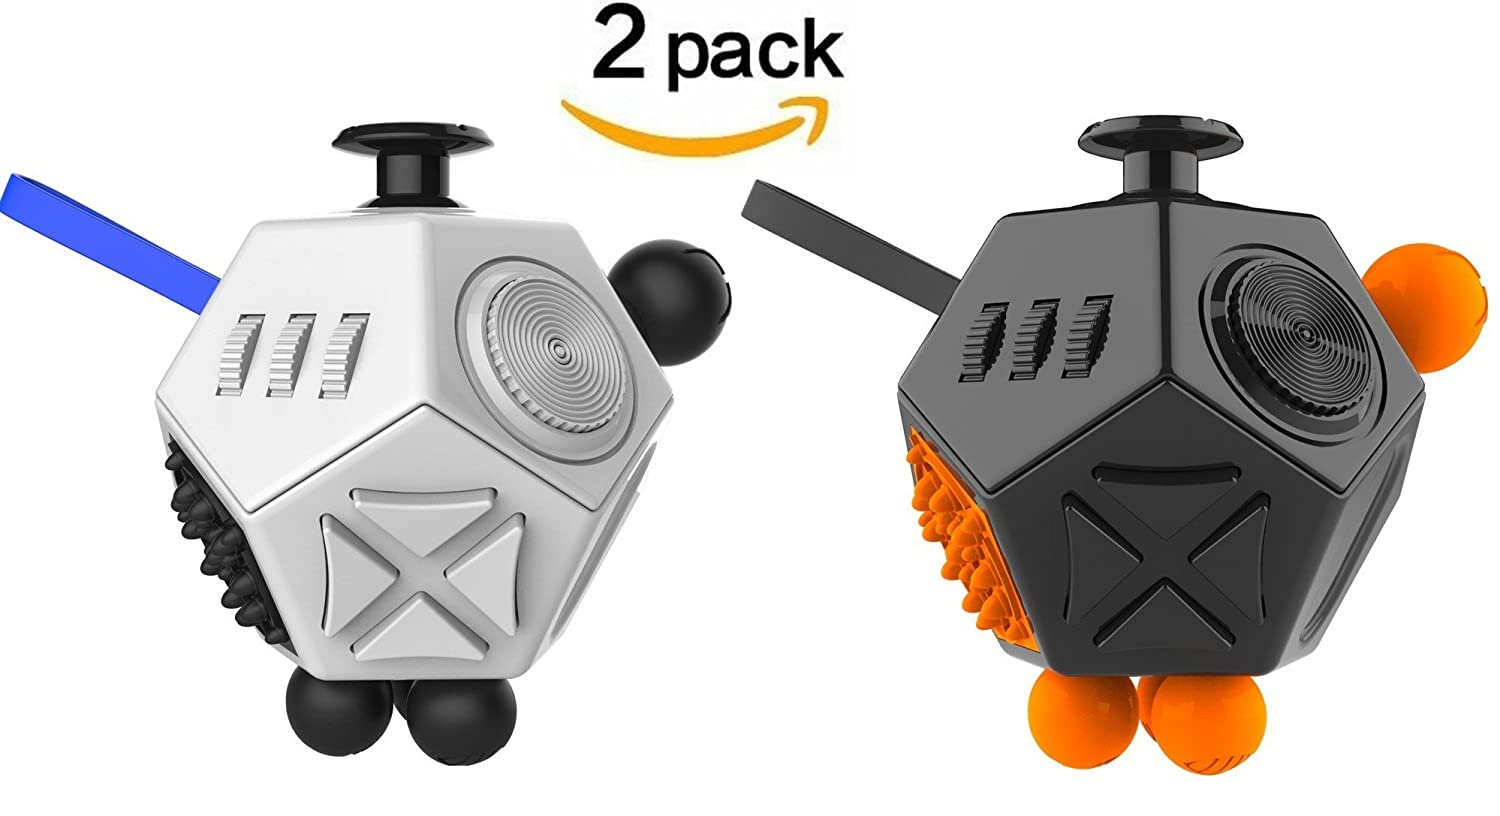 Fidget Dodecagon Cube, Cubier Advanced 12 Sided Prime Anti-Anxiety Dice Toy EDC ADD ADHD for Adult & Children